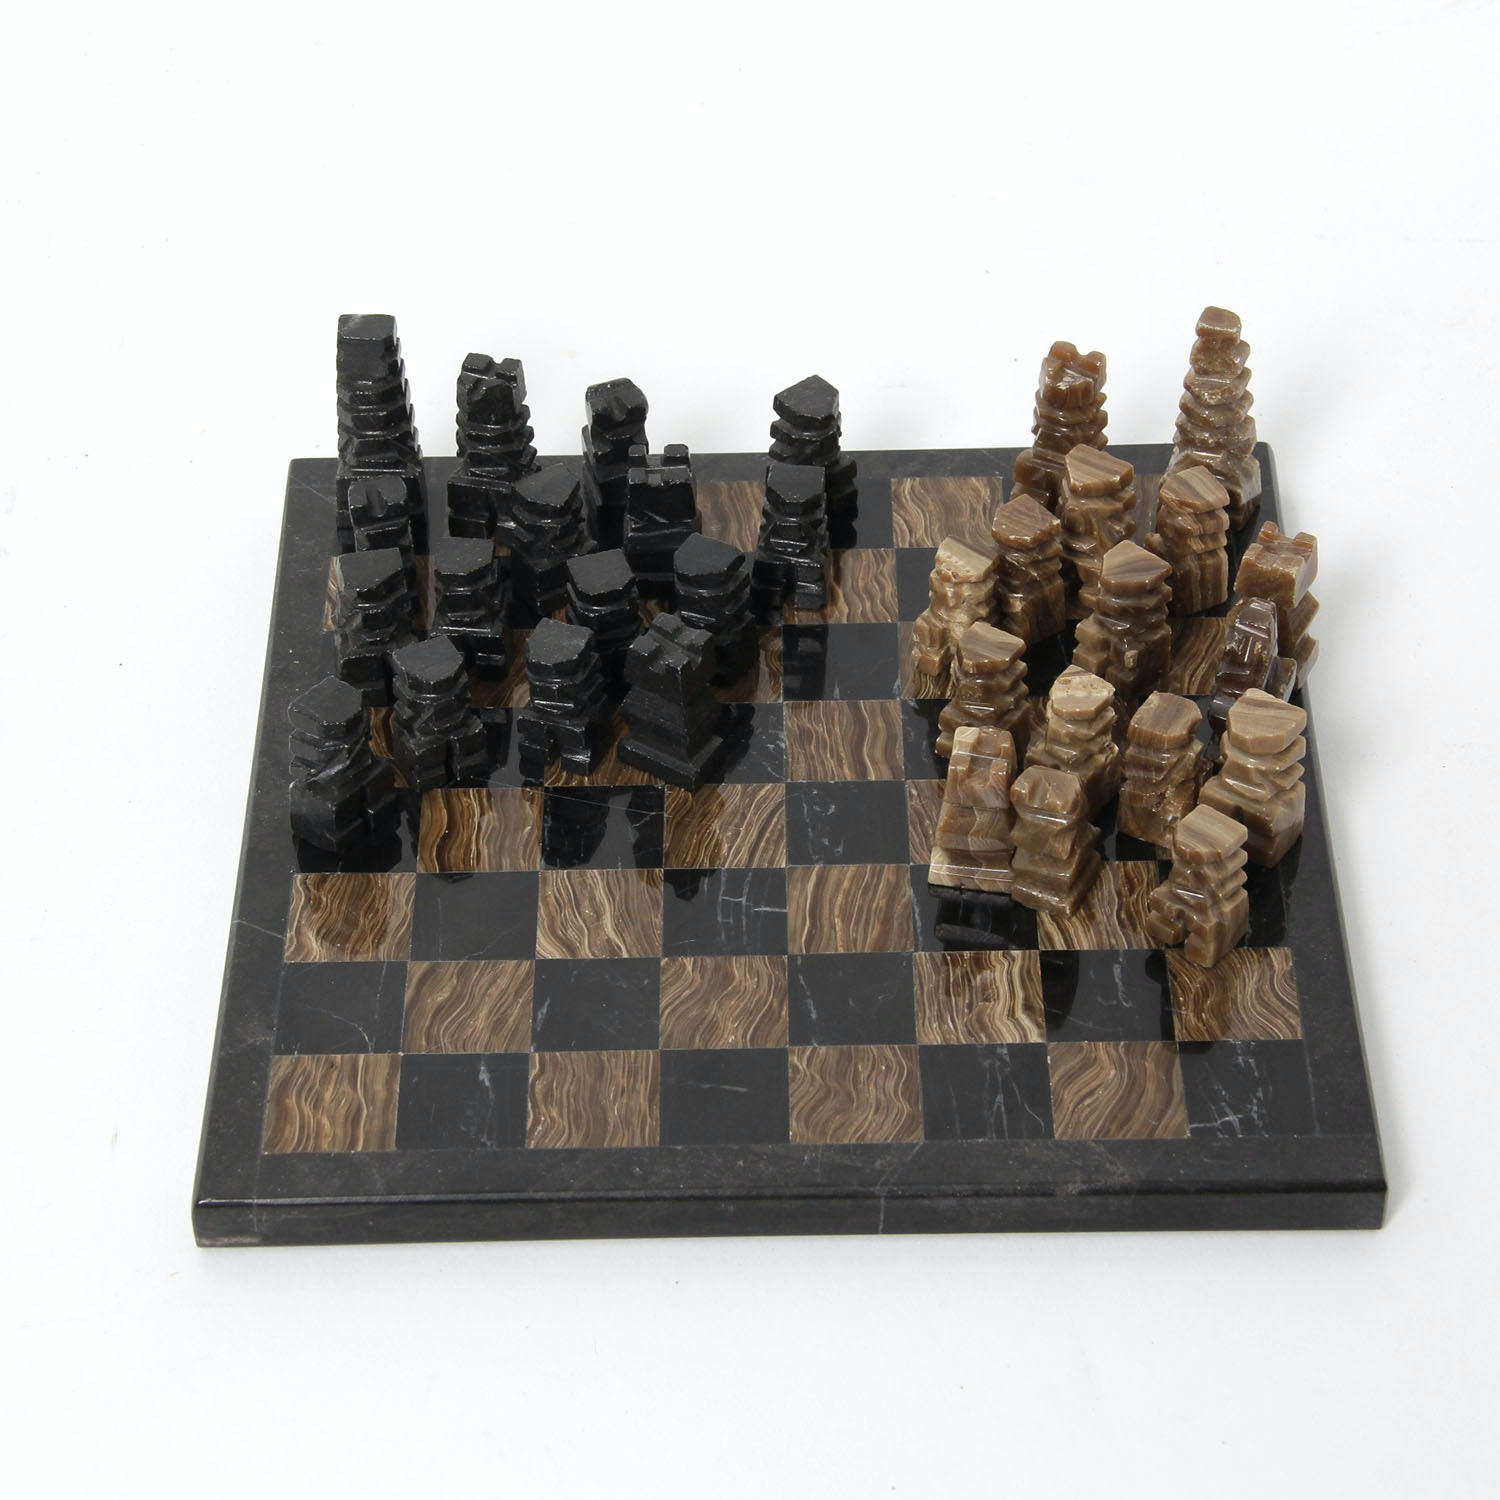 Hand Crafted Stone Chess Set with Carved Stone Game Pieces